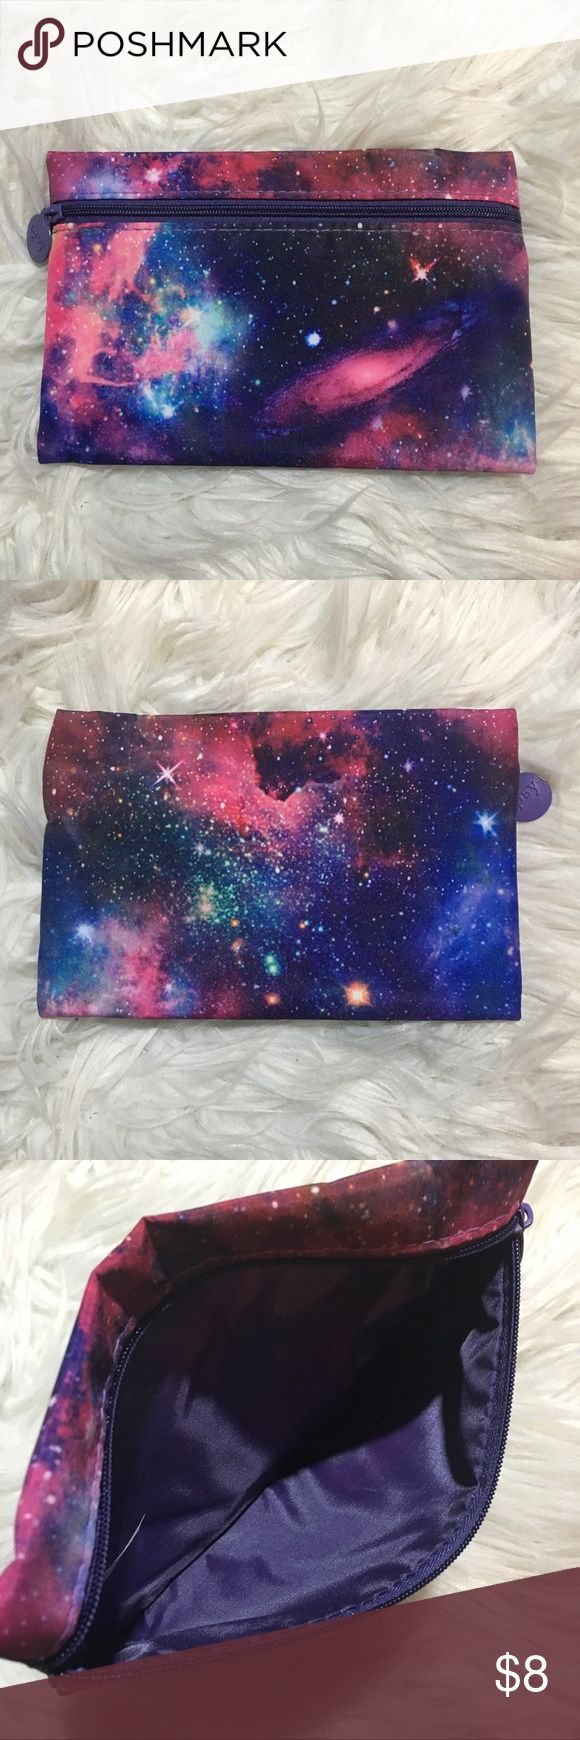 Ipsy Makeup Bag Galaxy printed makeup bag. In great condition!   🌼Bundle with other makeup bags listed in my closet to save money!!🌼 Ipsy Bags Cosmetic Bags & Cases